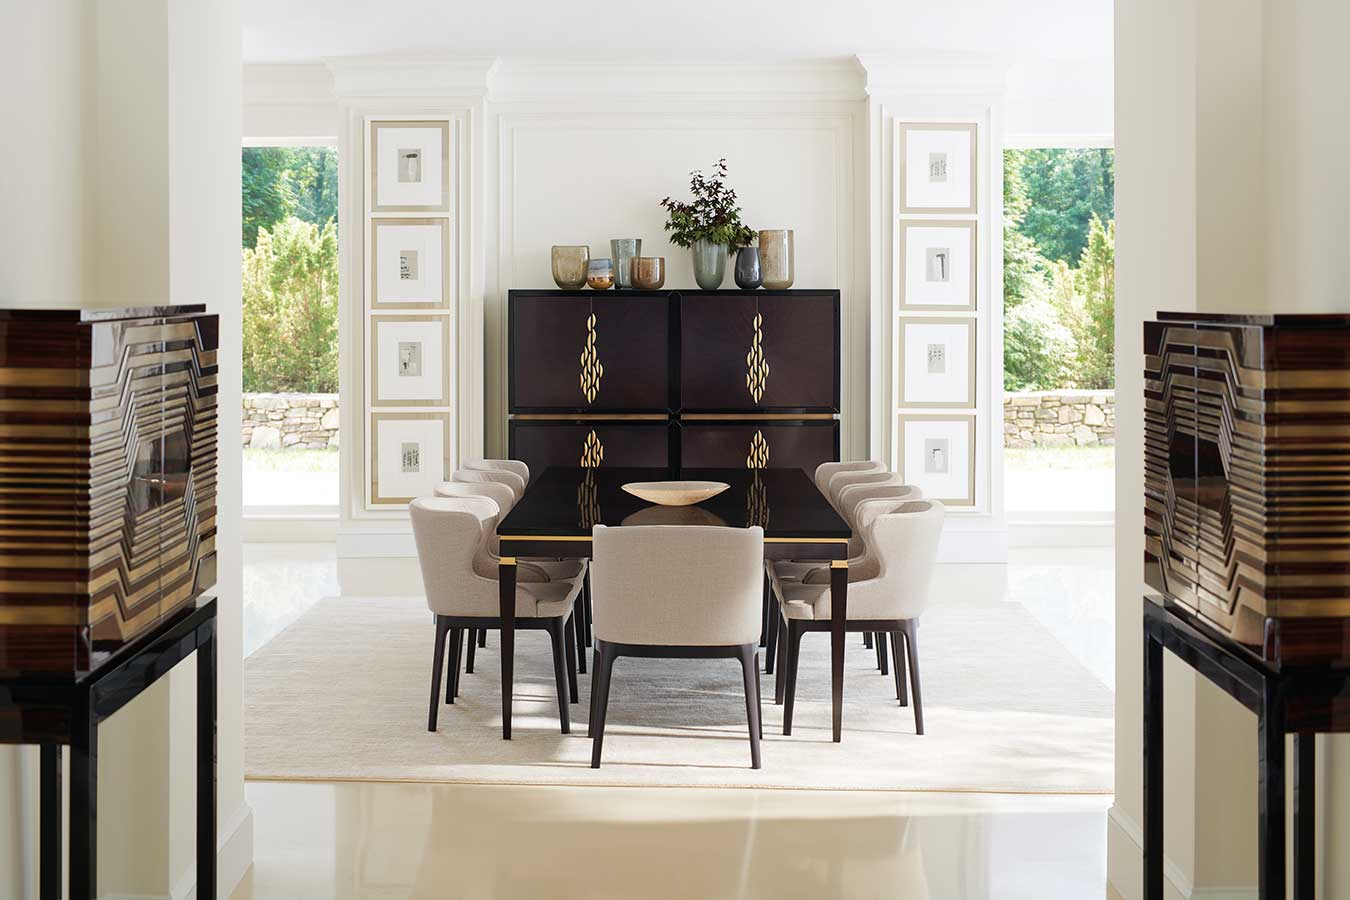 Dining room contemporary luxury designer modern exclusive handcrafted furniture sandton johannesburg